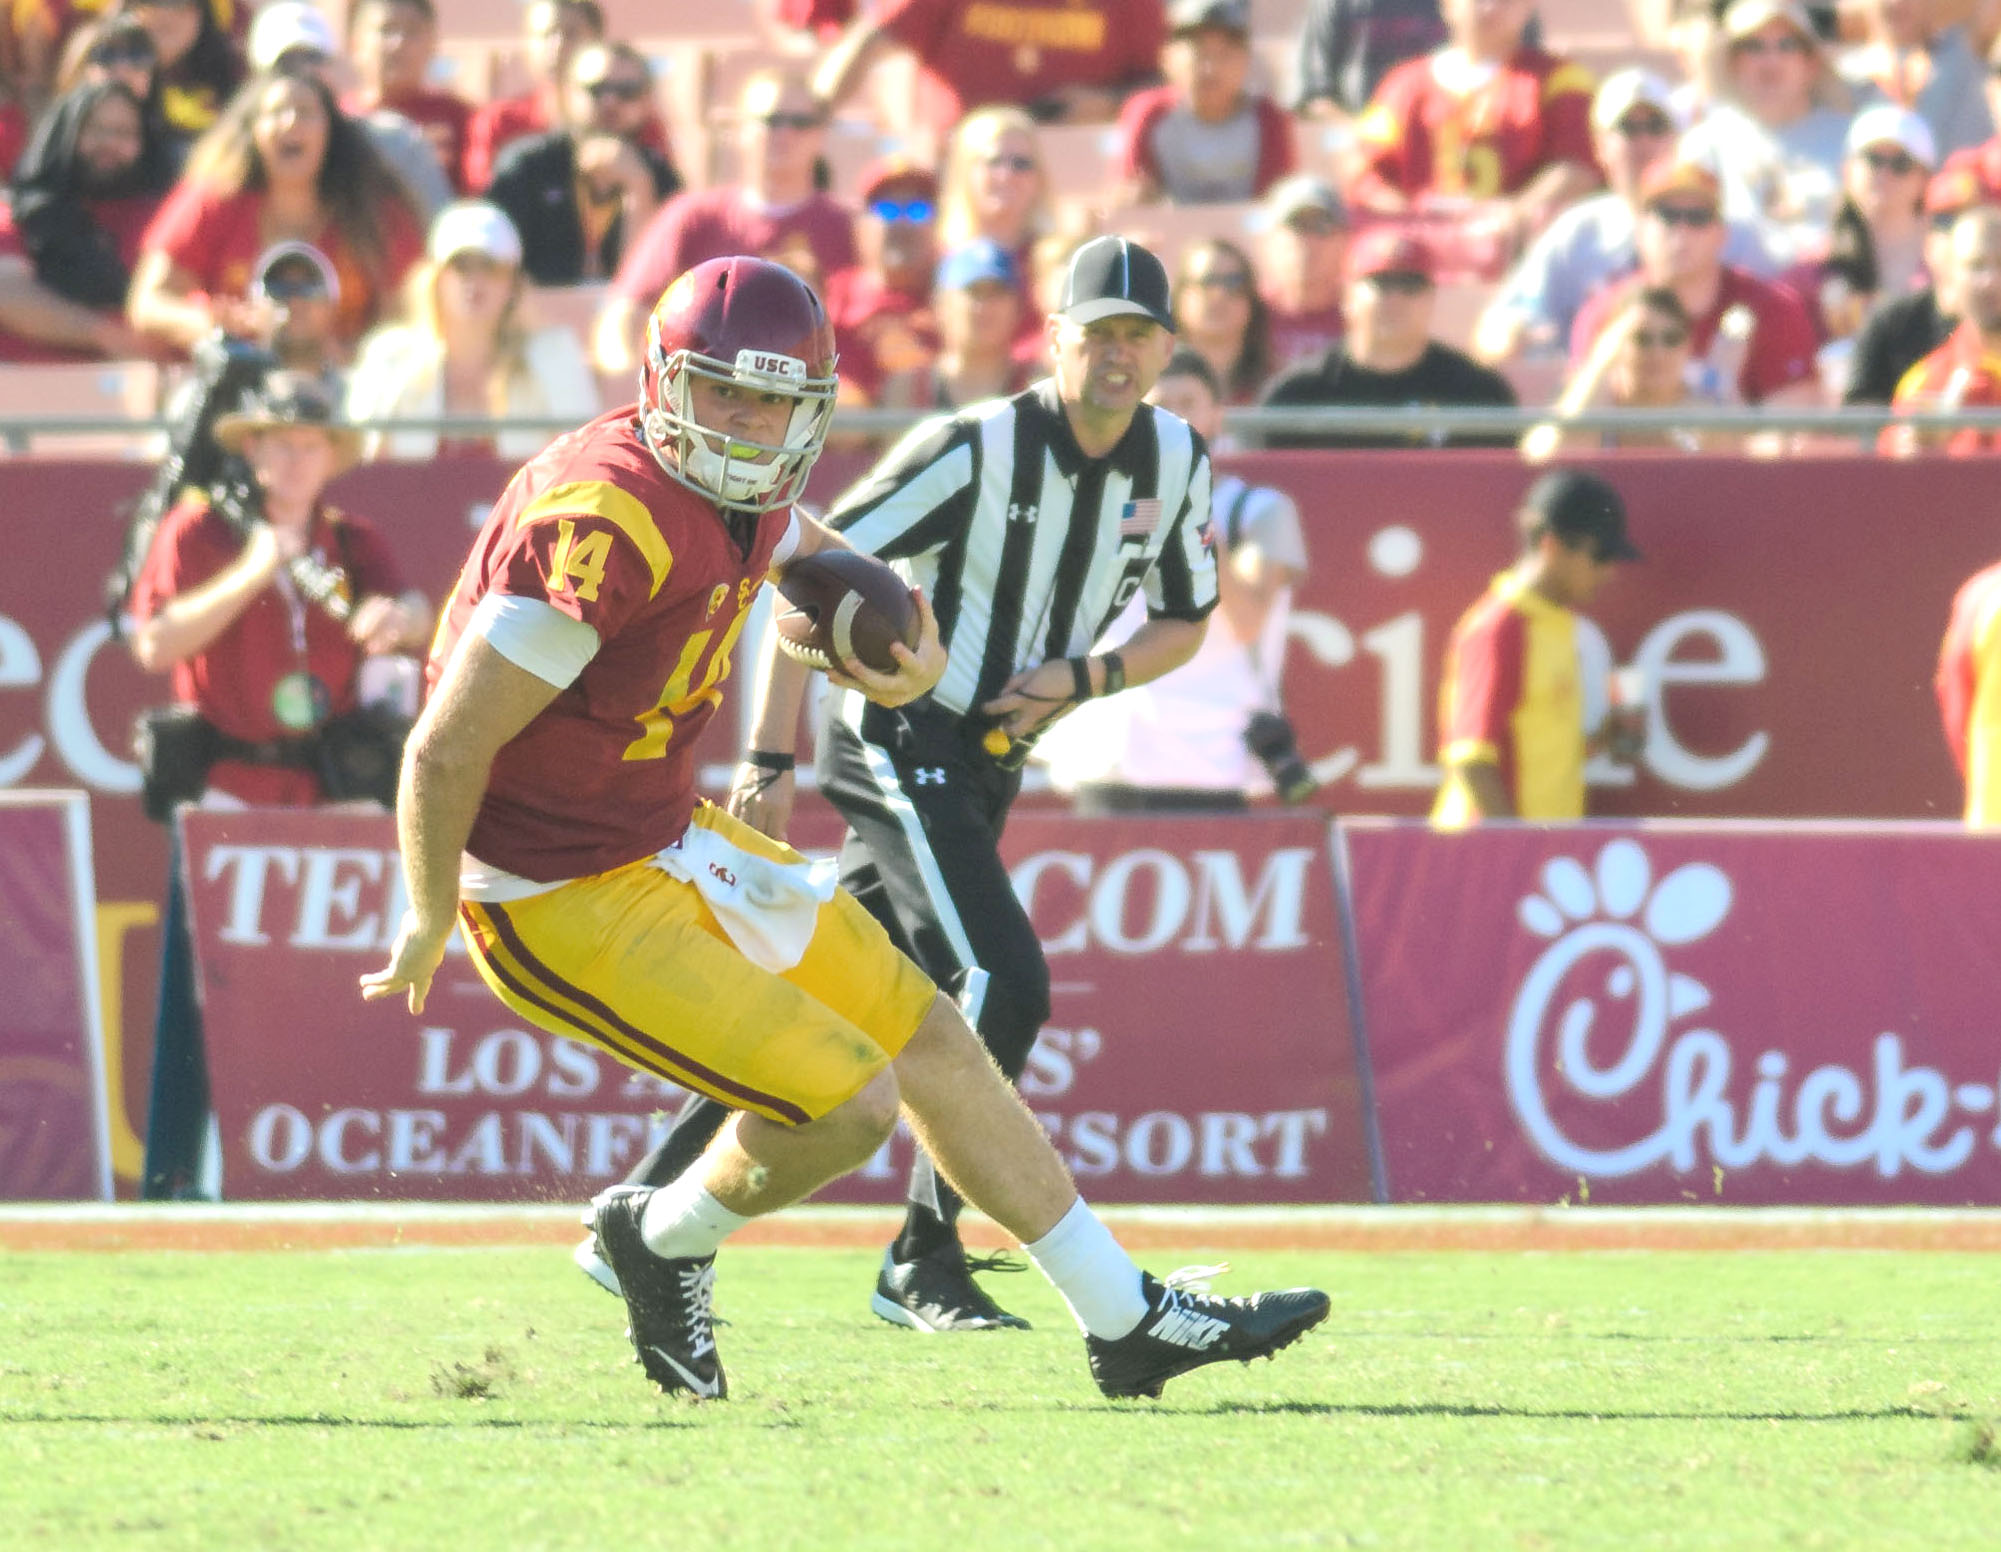 Benjamin Dunn | Daily Trojan Eyes on the prize · Despite ranking eighth in the nation in passer rating, redshirt freshman quarterback Sam Darnold has three fumbles.